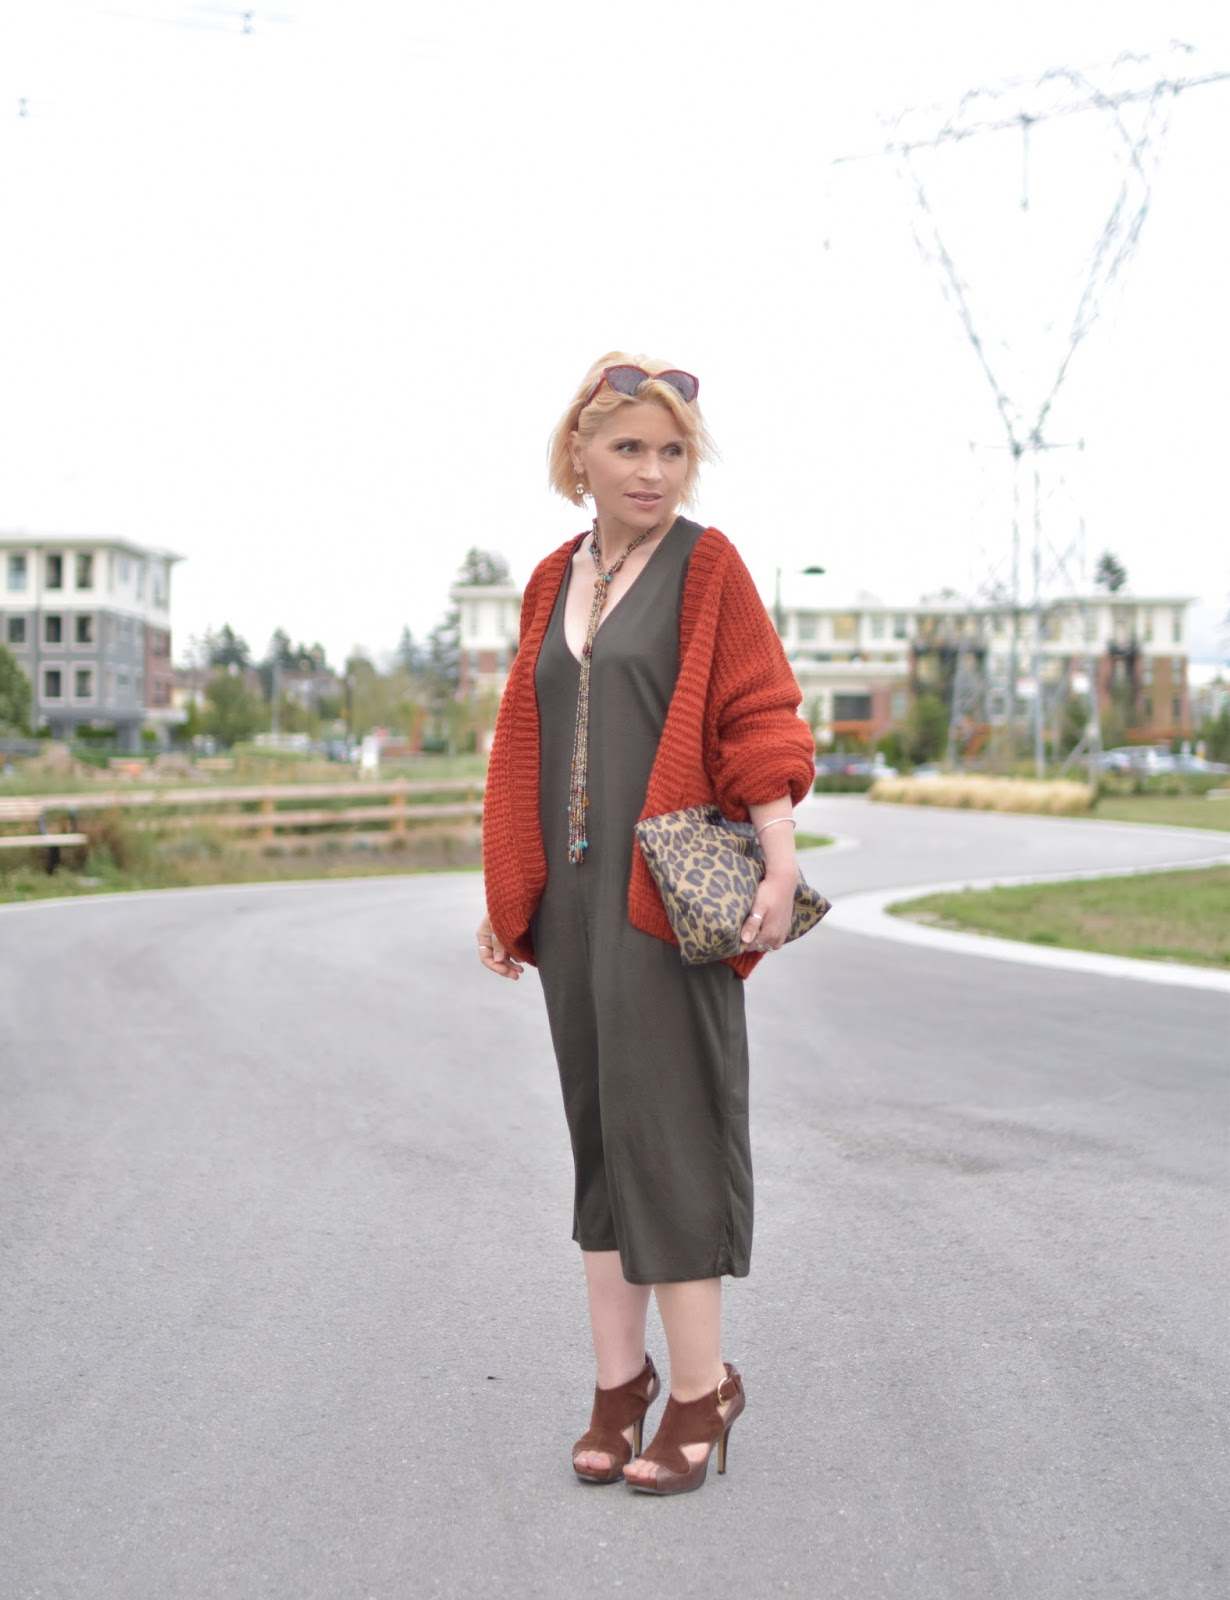 Monika Faulkner styles an olive jersey caftan with a chunky-knit cardigan, suede heels, and leopard-print clutch